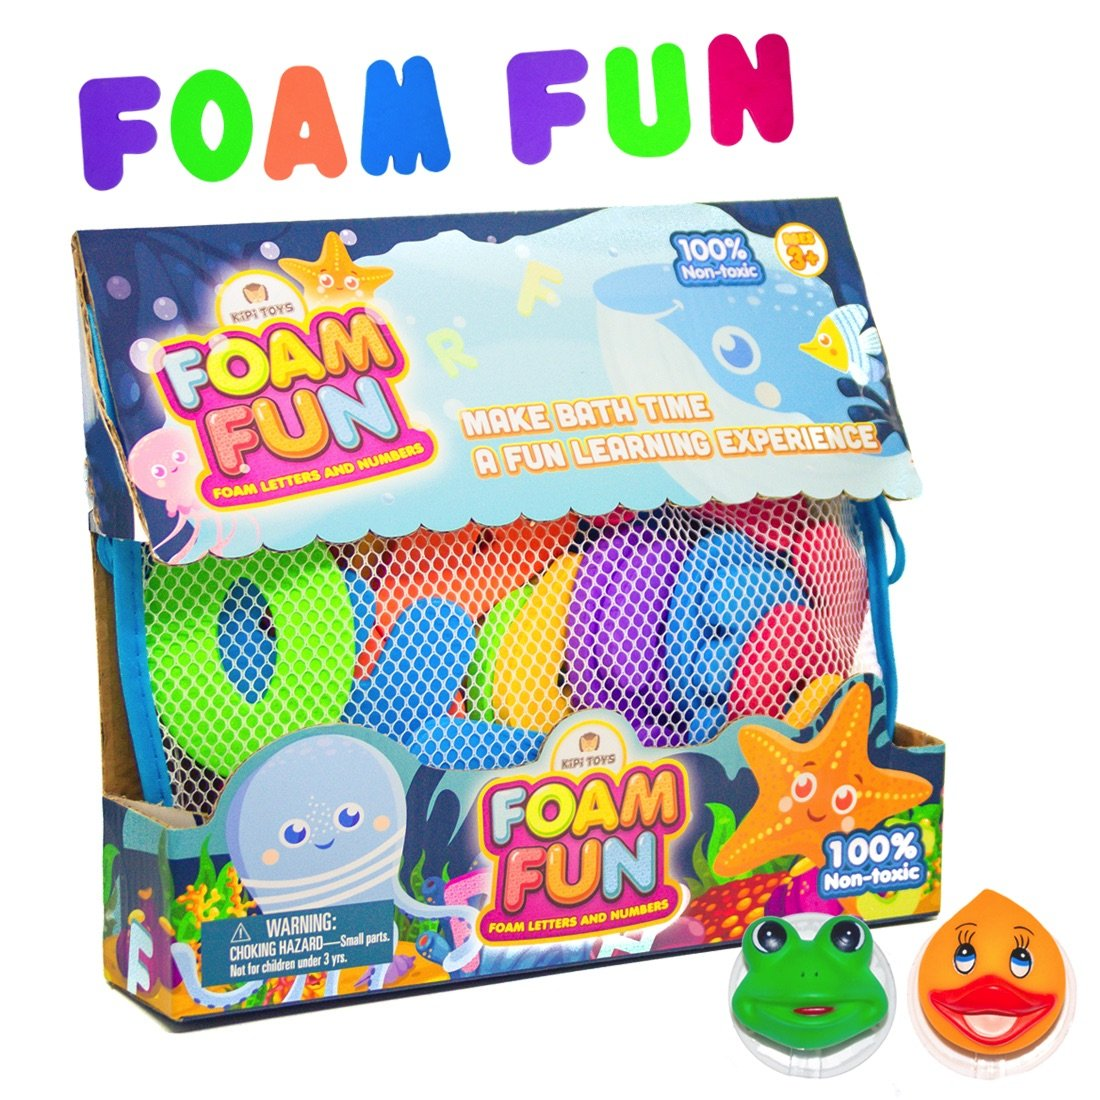 Foam Fun Alphabet Letters and Numbers For Bathtub Educational Organizer Storage Container Water Colorful Pastel Mesh Net Tub Floating Toy 36 PCS ABC For Kids Children Boys Girls Big & Beautiful